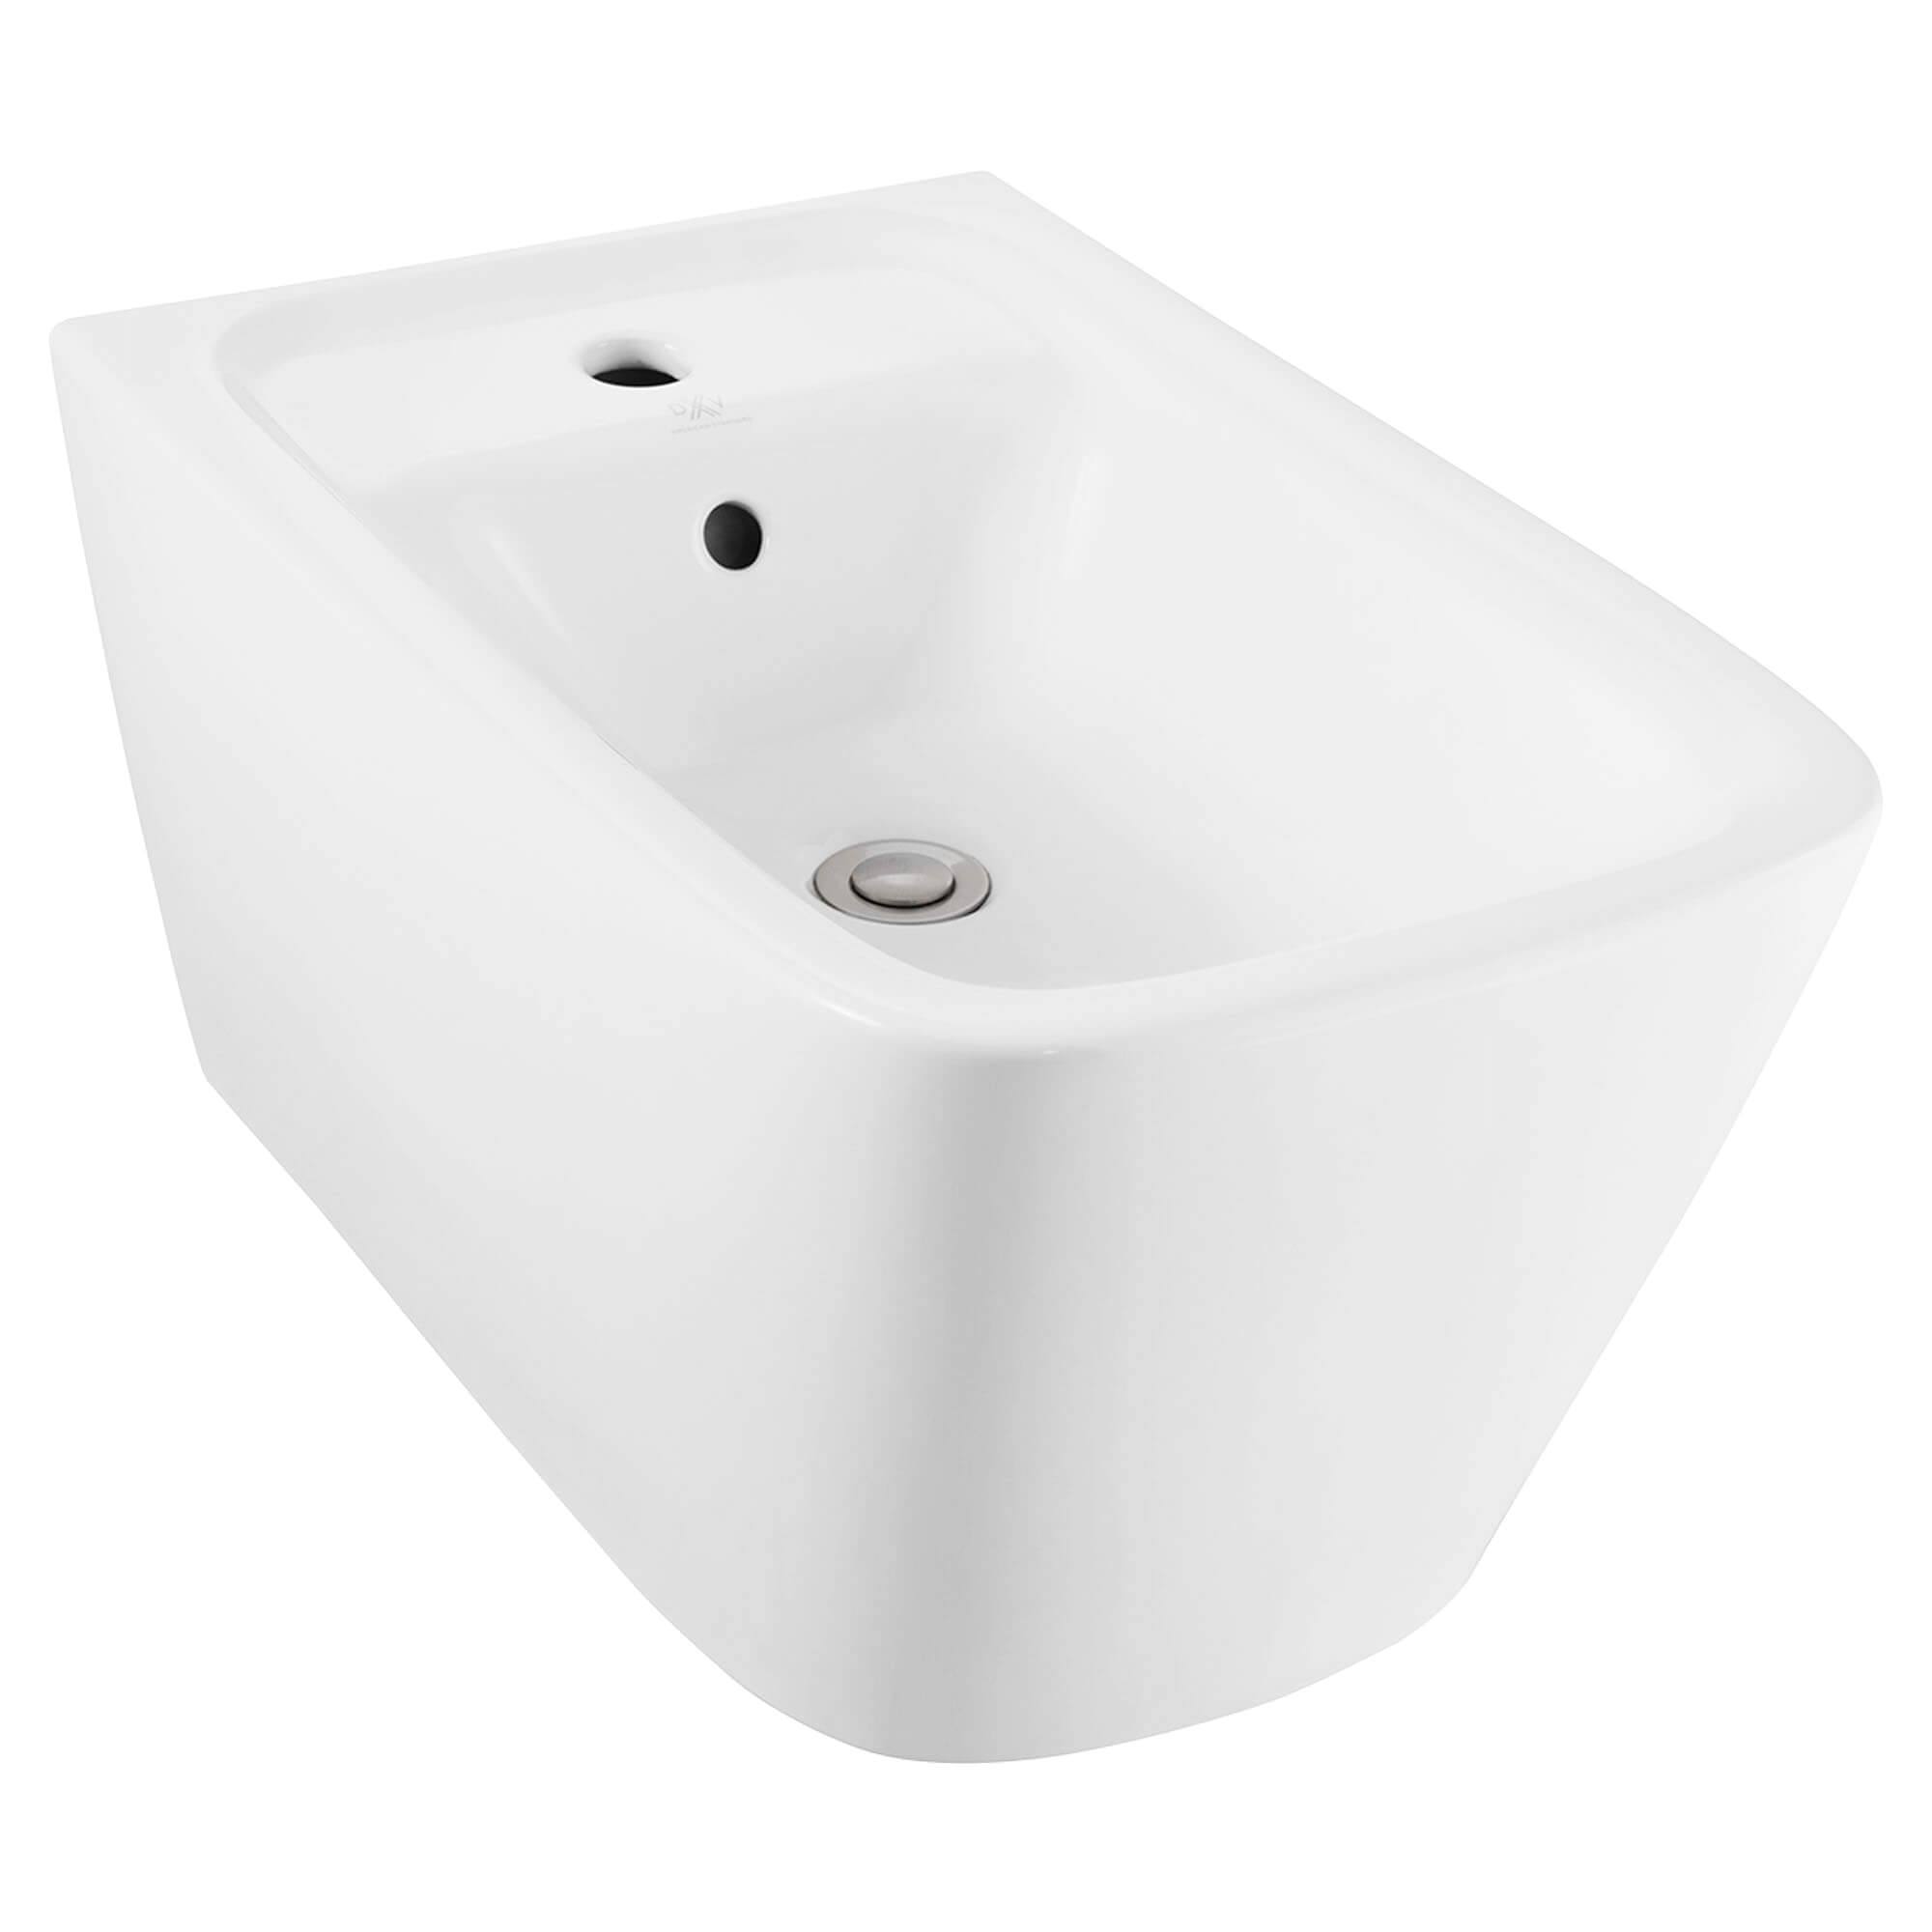 DXV Modulus Wall-Mounted Bidet